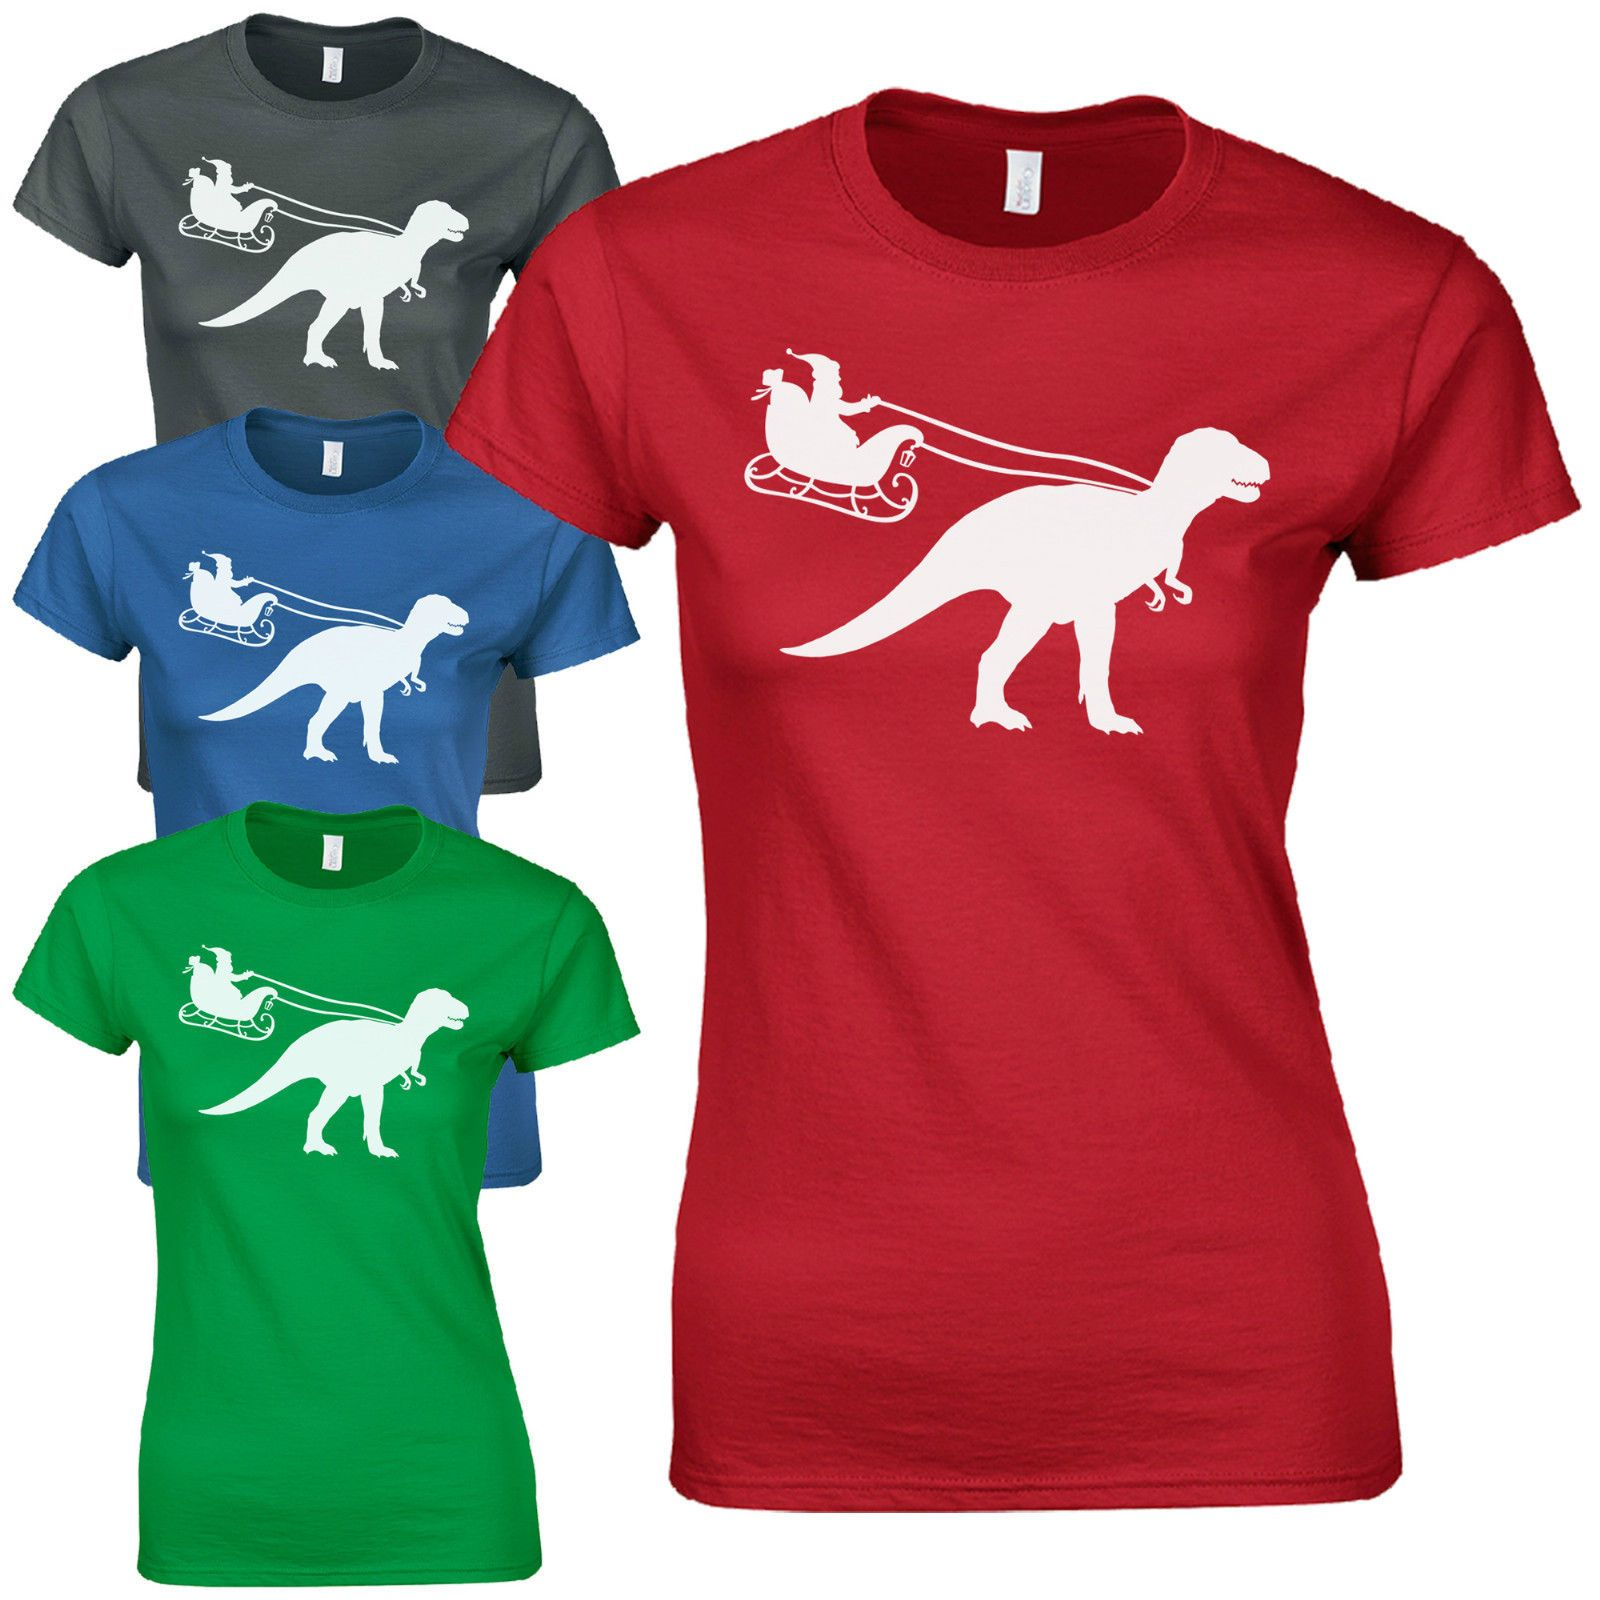 c6ee58e2 ... Dinosaur Ladies Fitted T-Shirt Funny T-Rex Jurassic Christmas Gift  variant attributes variant attributes. variant attributes. Stock Status :  In Stock